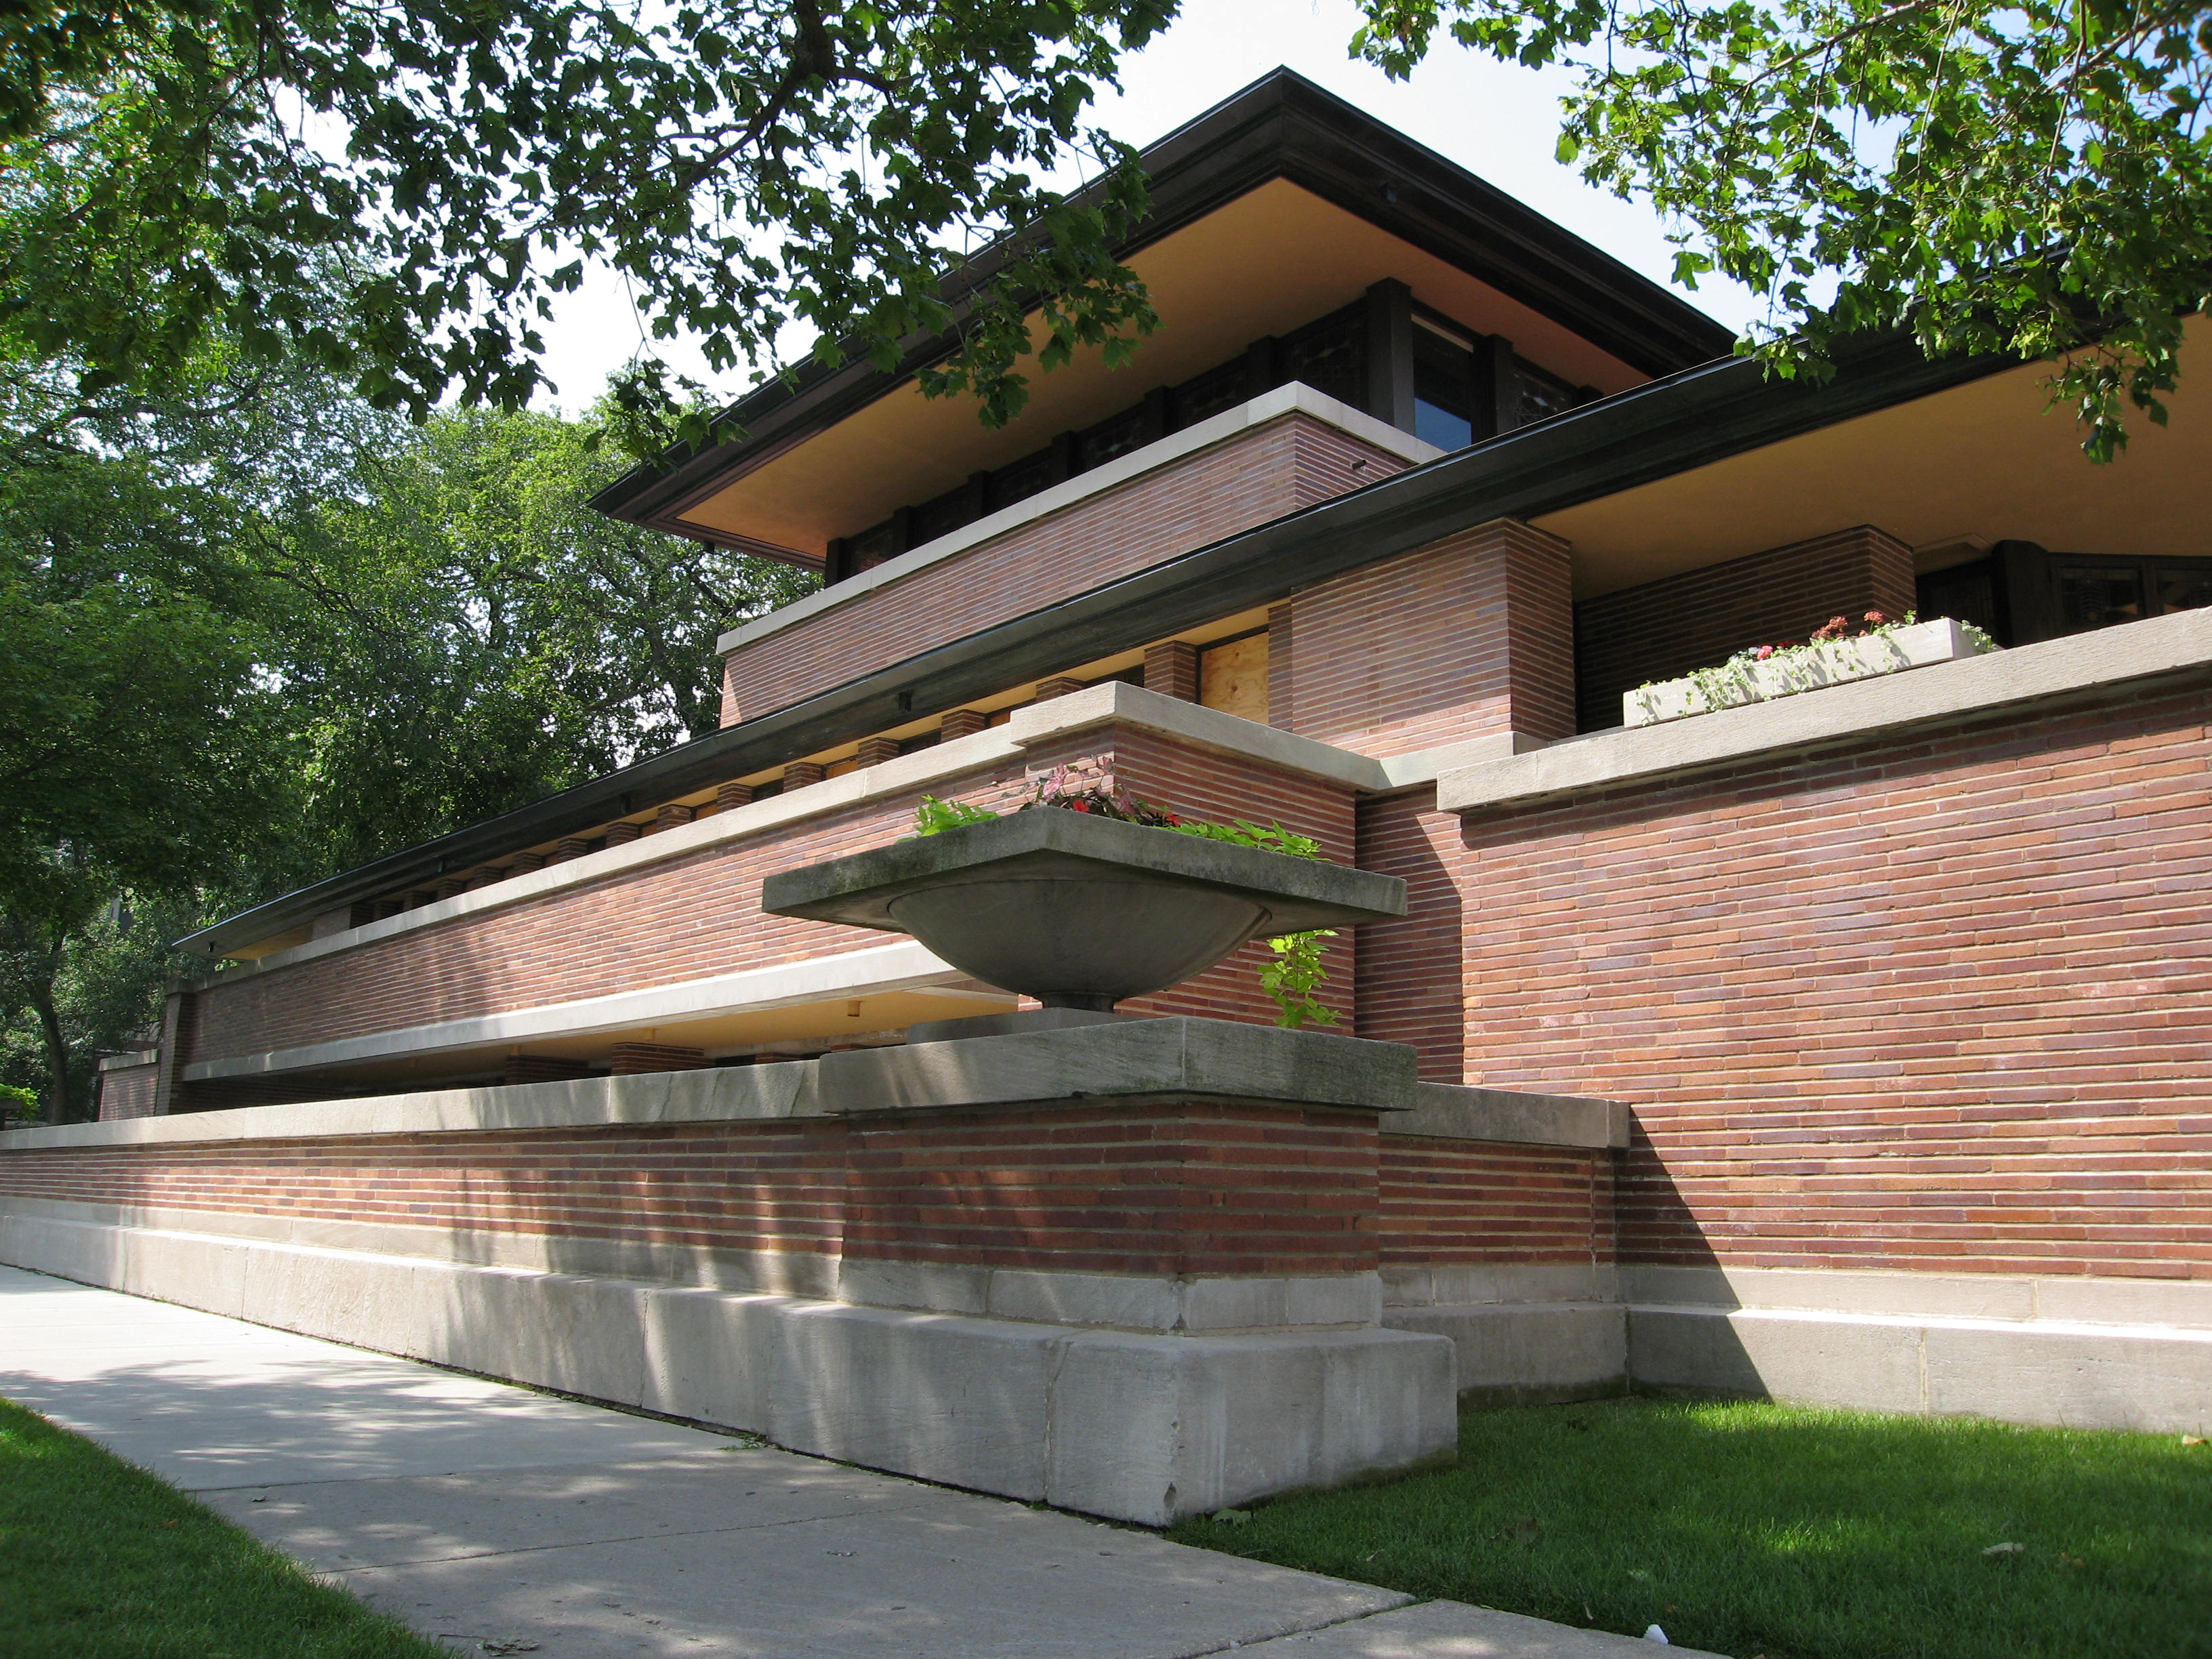 File:Robie House designed by Frank Lloyd Wright 1909.jpg ...